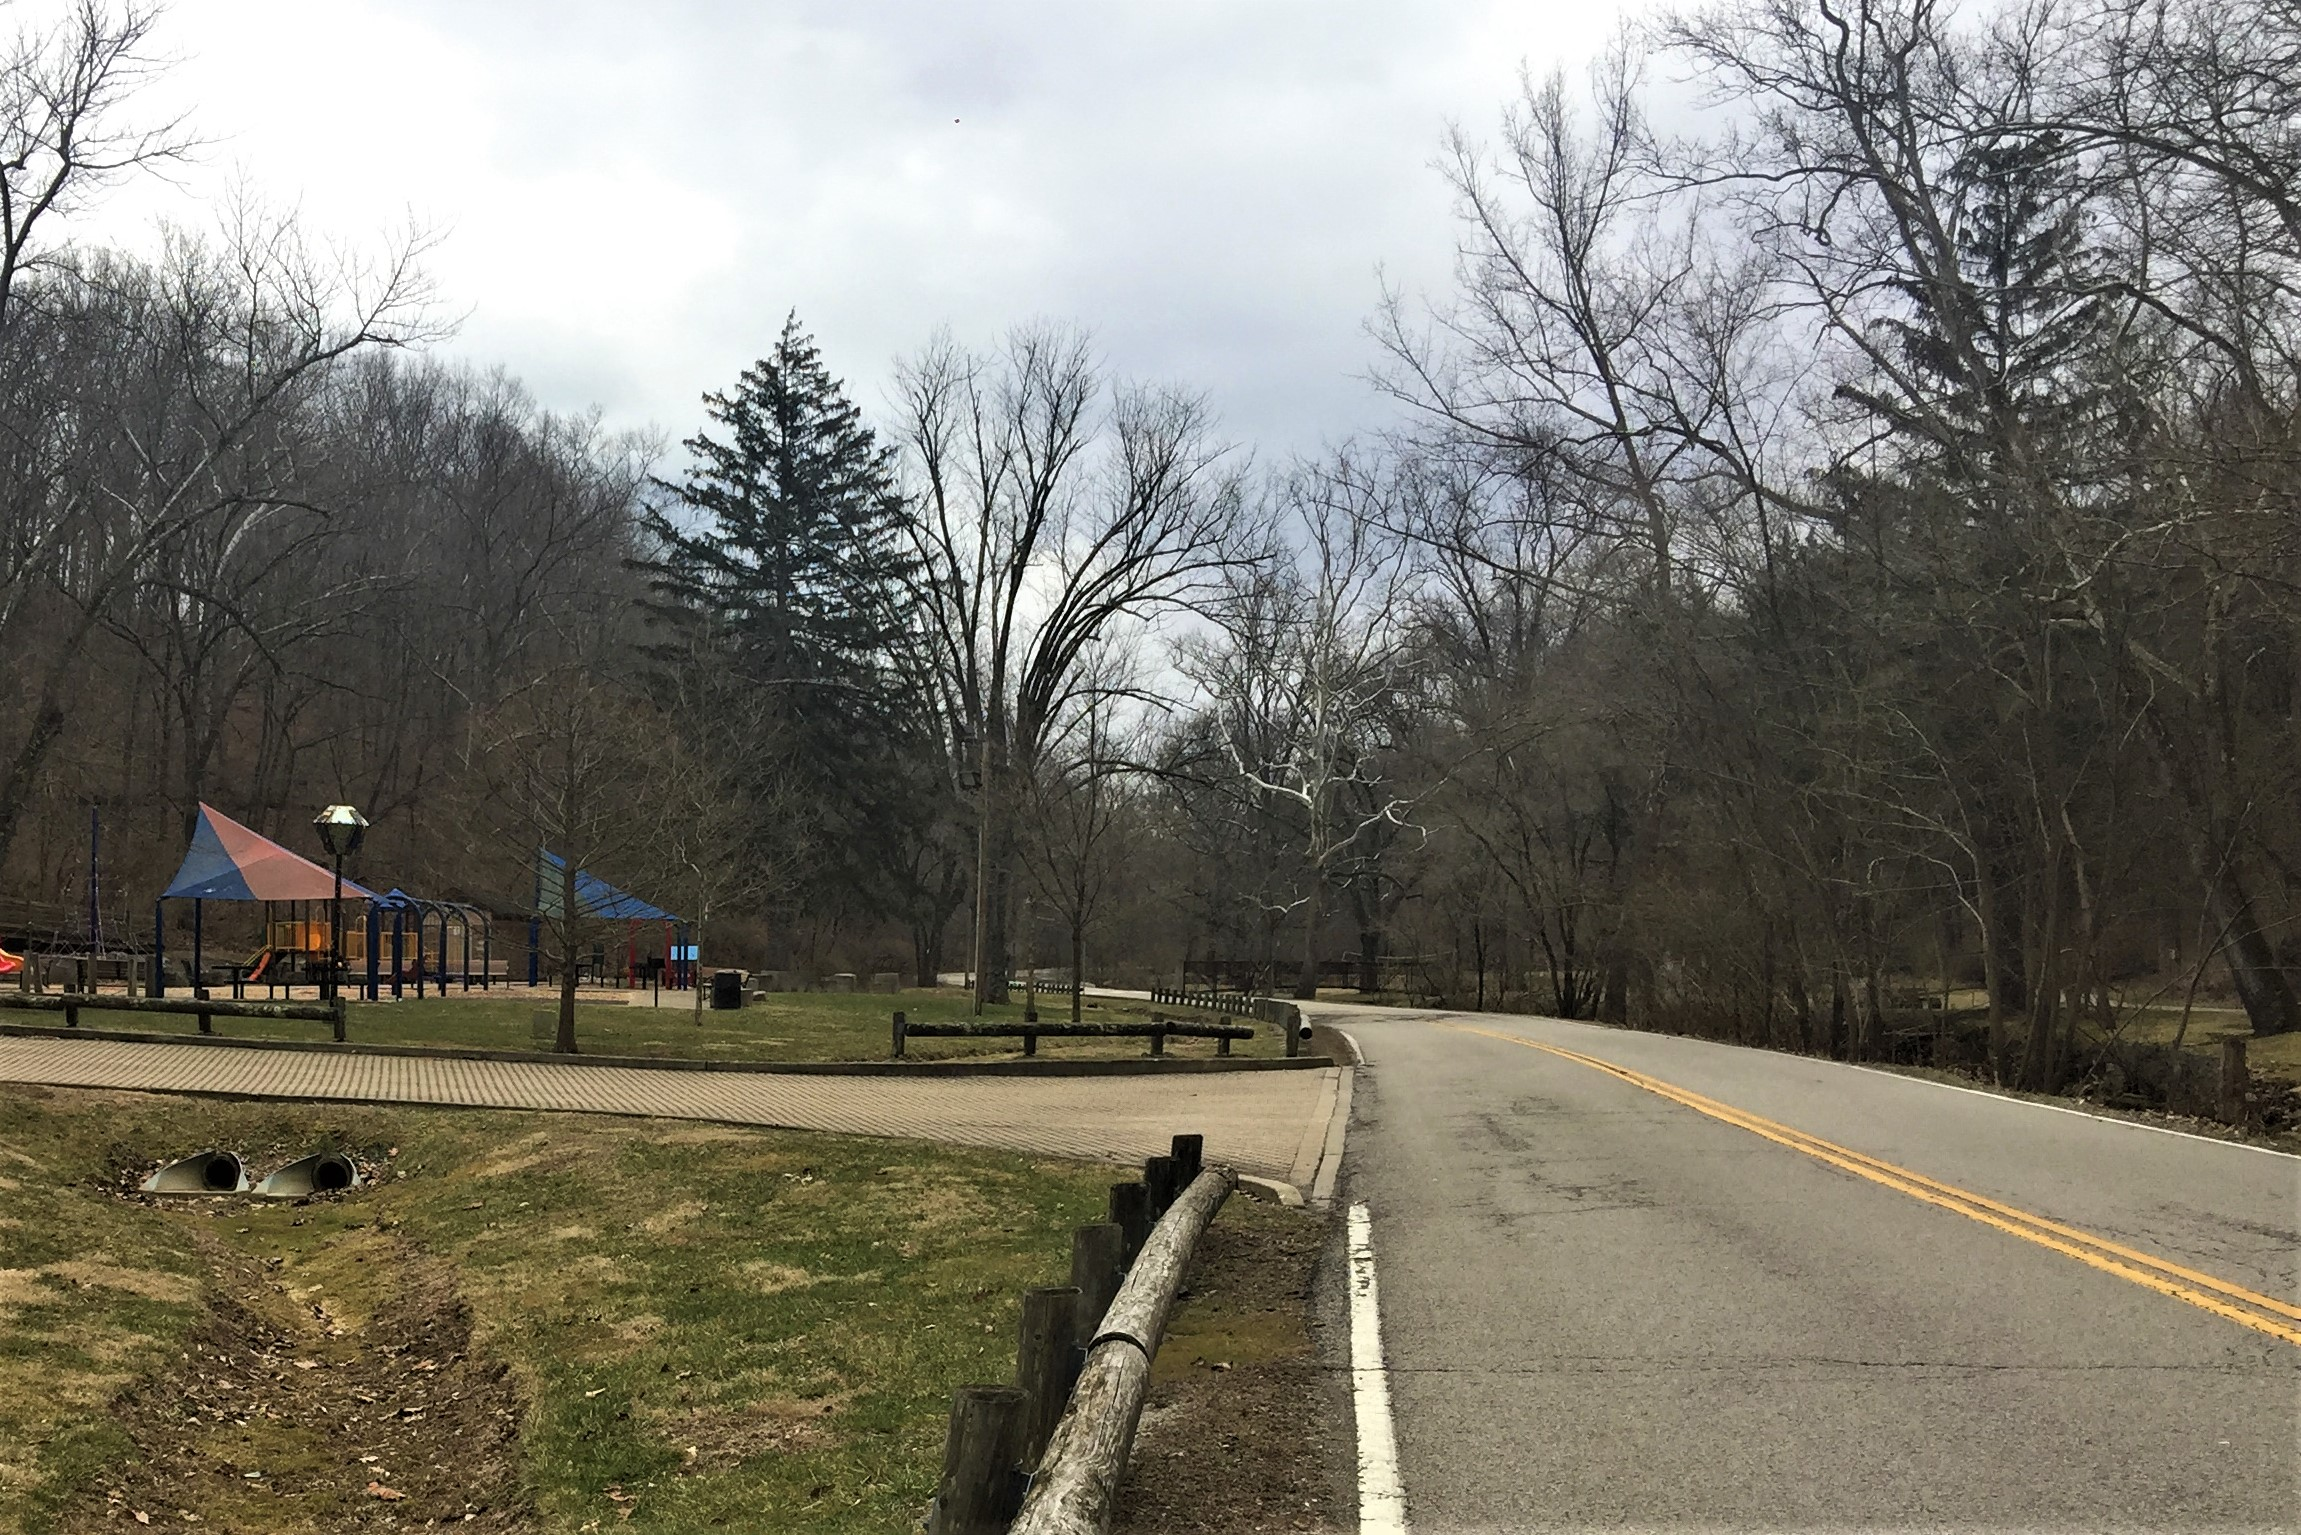 A photo looking south on Old State Road 37 near the playground in Lower Cascades Park in Bloomington.